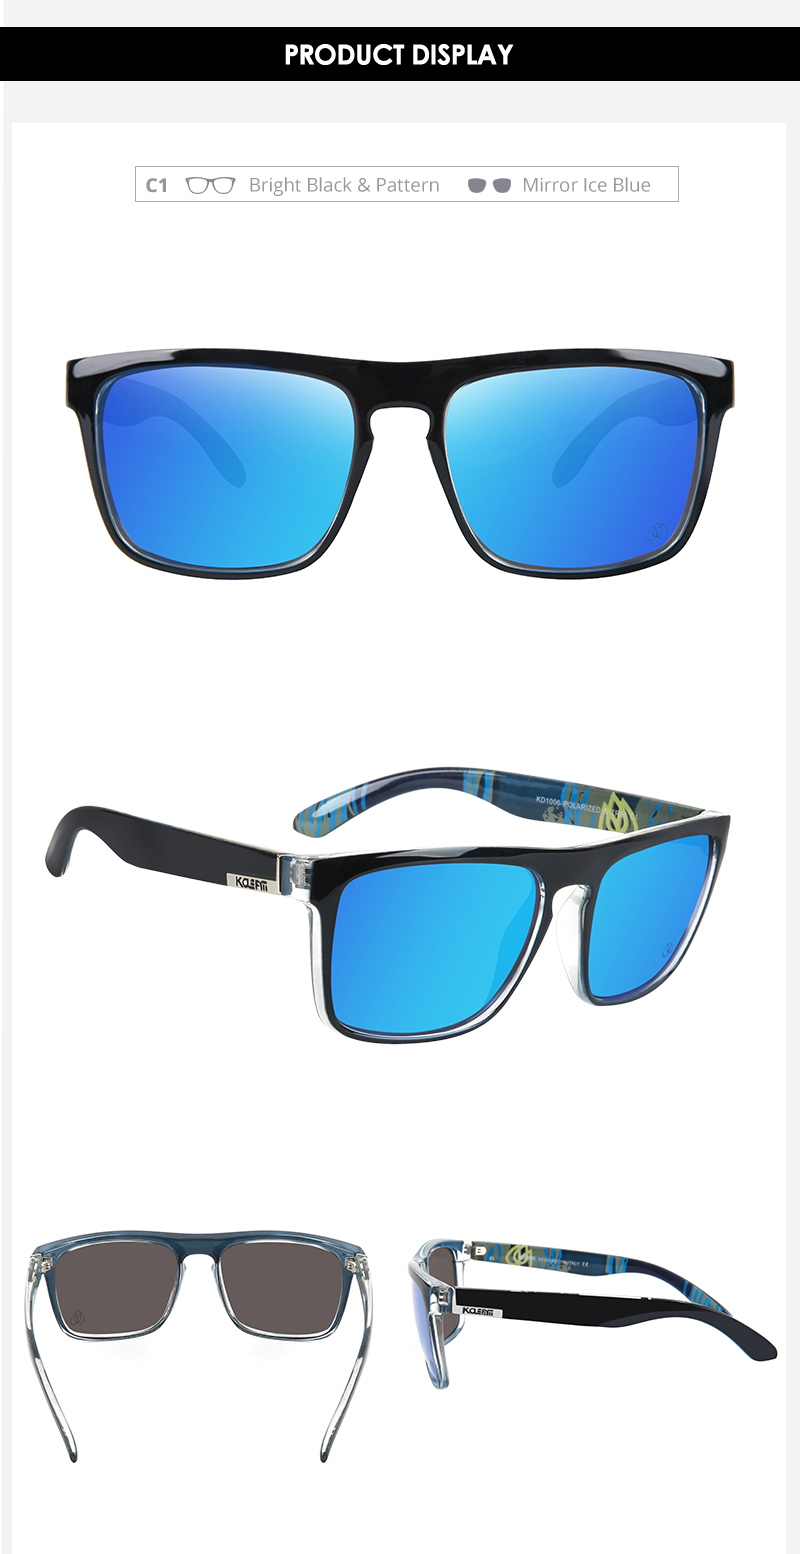 KDEAM LUXURY Polarized Sunglasses Men 100% UV Protection TR90 Unbreakable Frame Square Outdoor Mirrored Eyewear KD1006